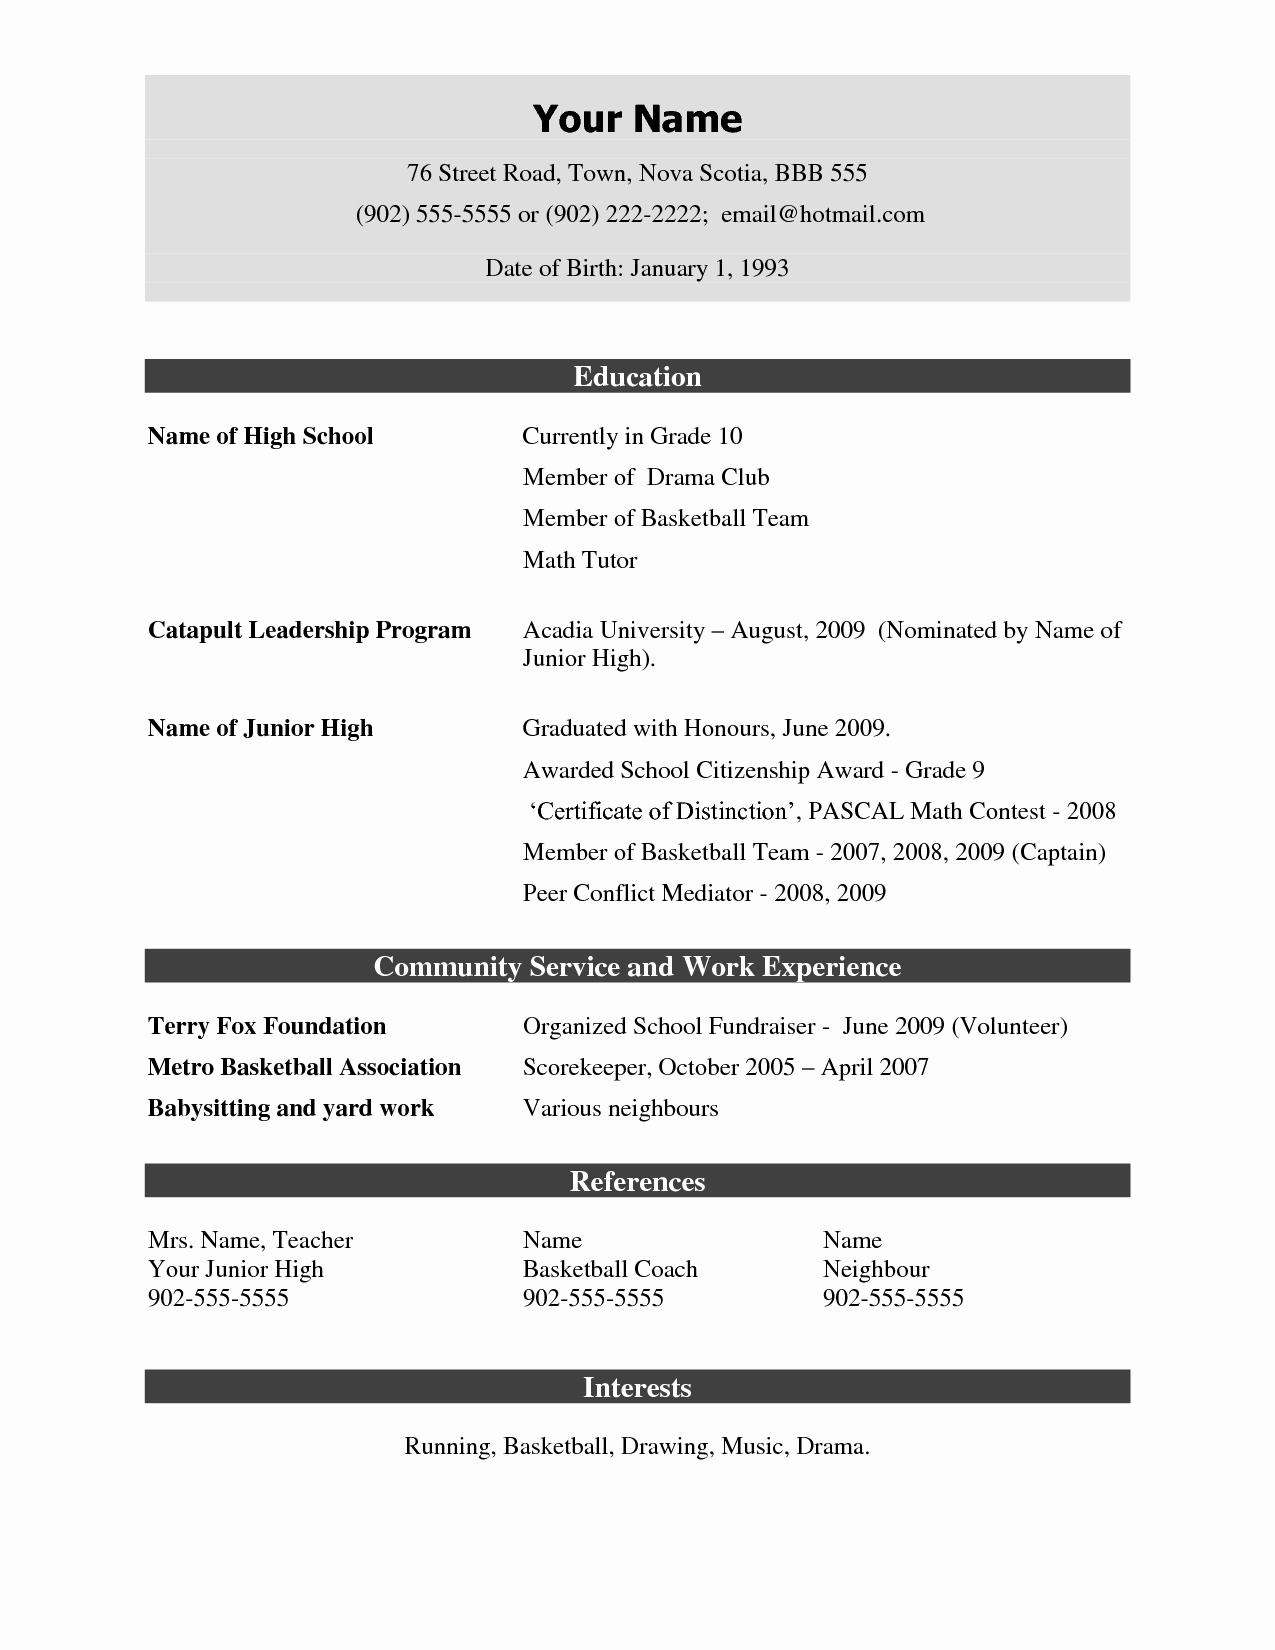 Sample Resume Templates Free Download Awesome Demo Resume